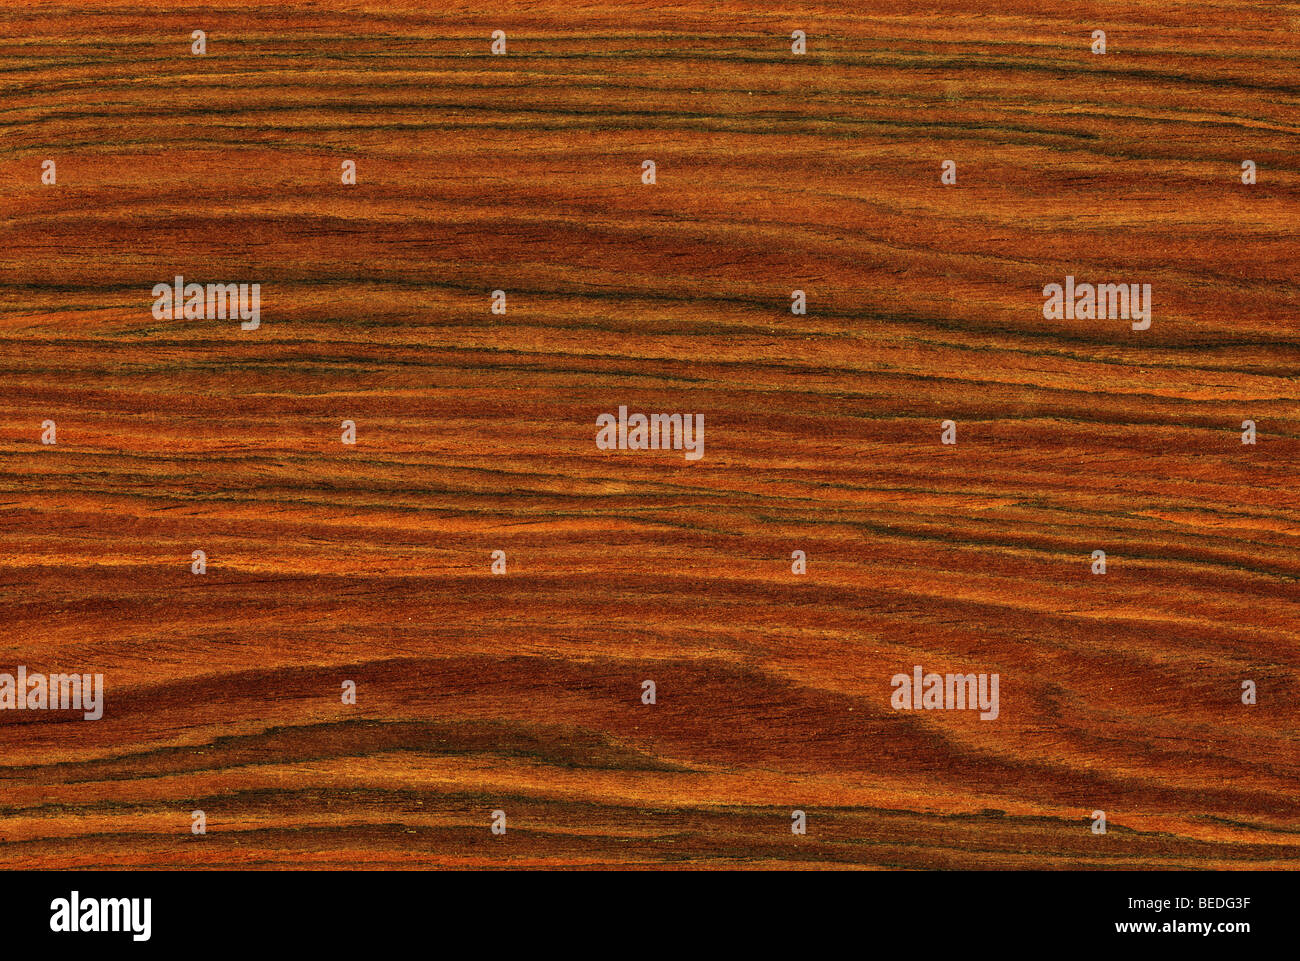 Texture Of Rosewood High Detailed Wood Texture Series Stock Photo